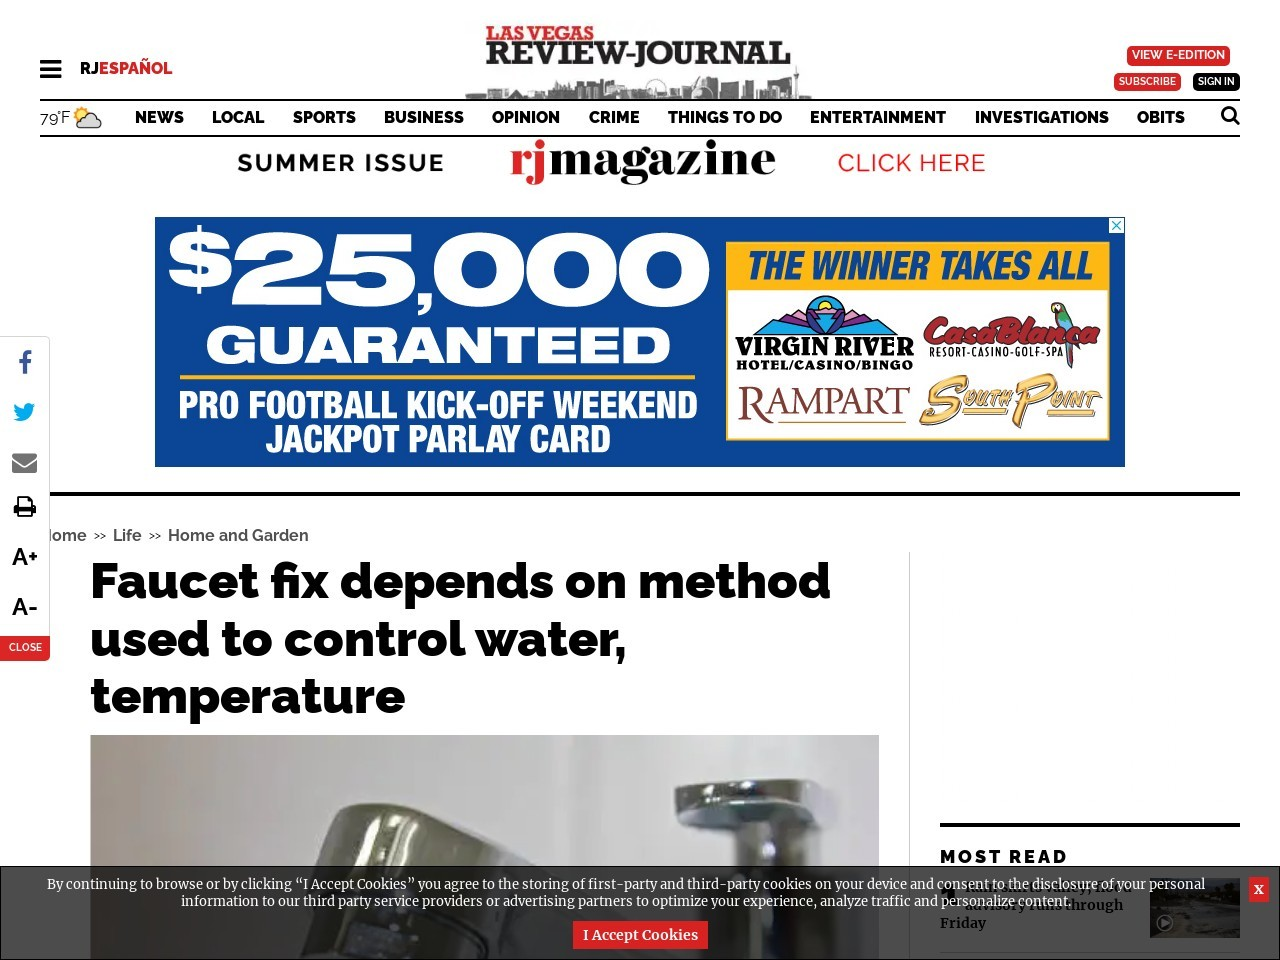 Faucet fix depends on method used to control water, temperature